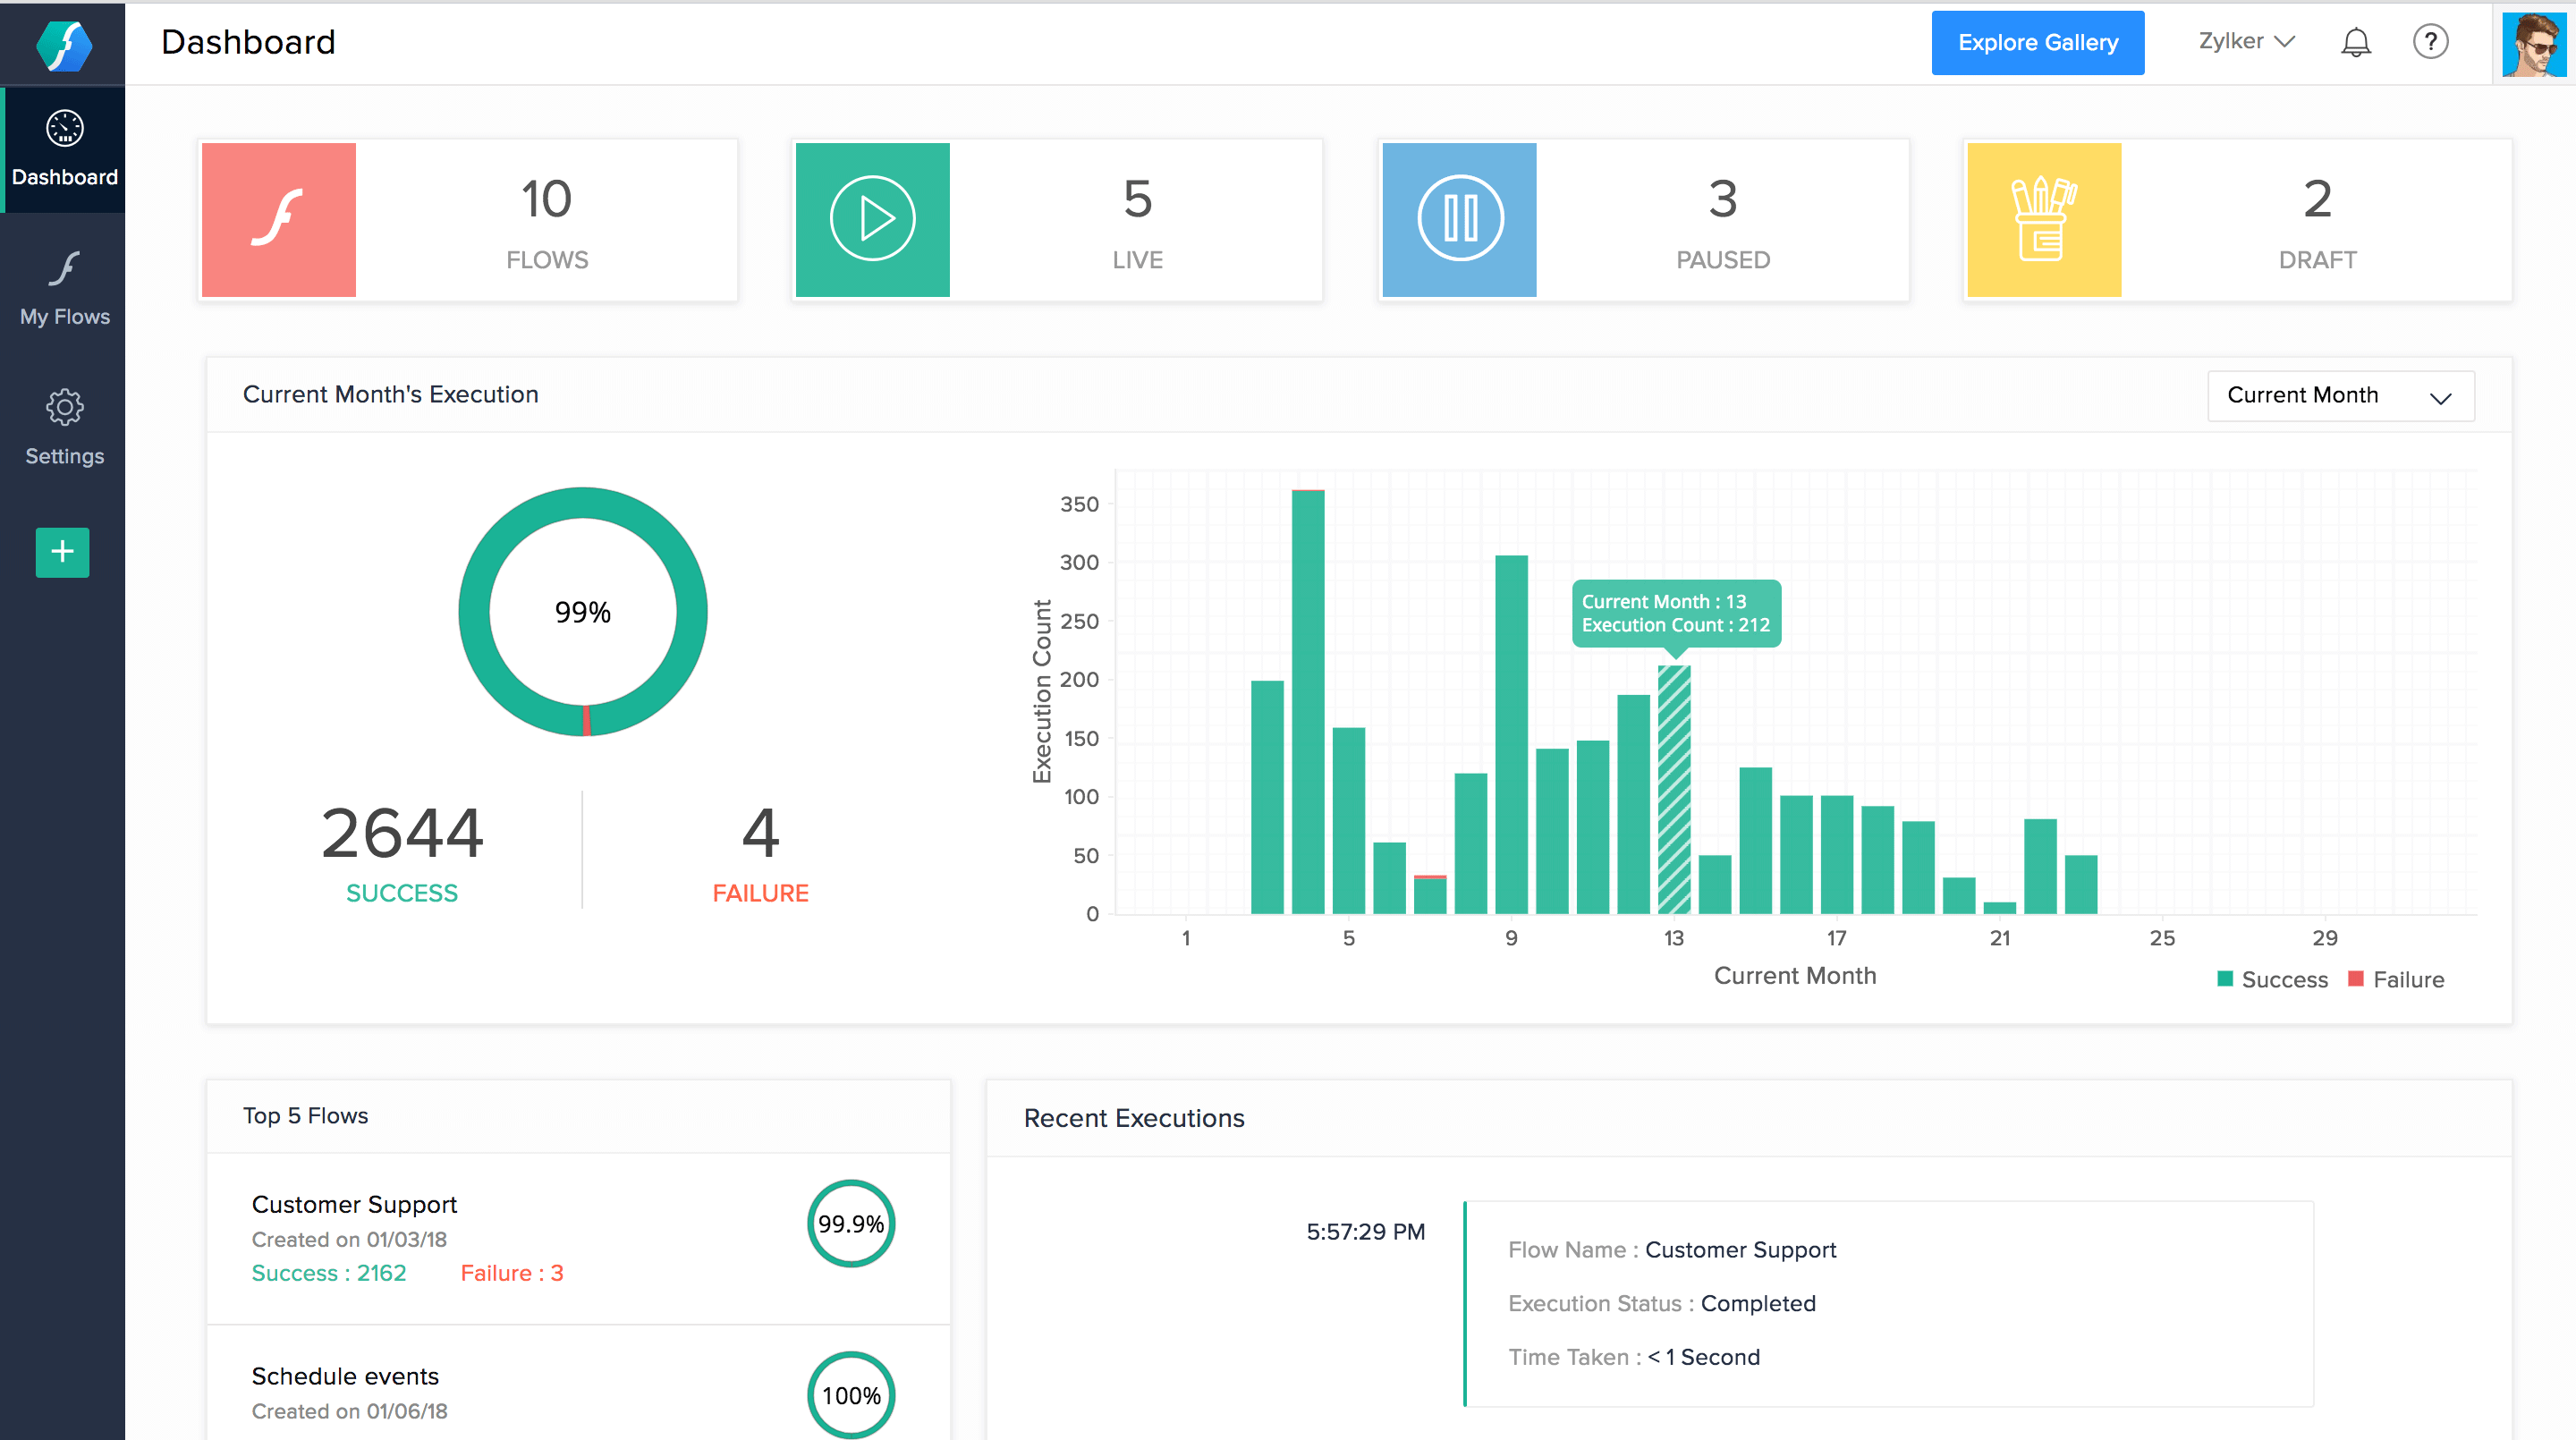 The dashboard gives complete visibility of all processes and metrics that help decide when to update flows